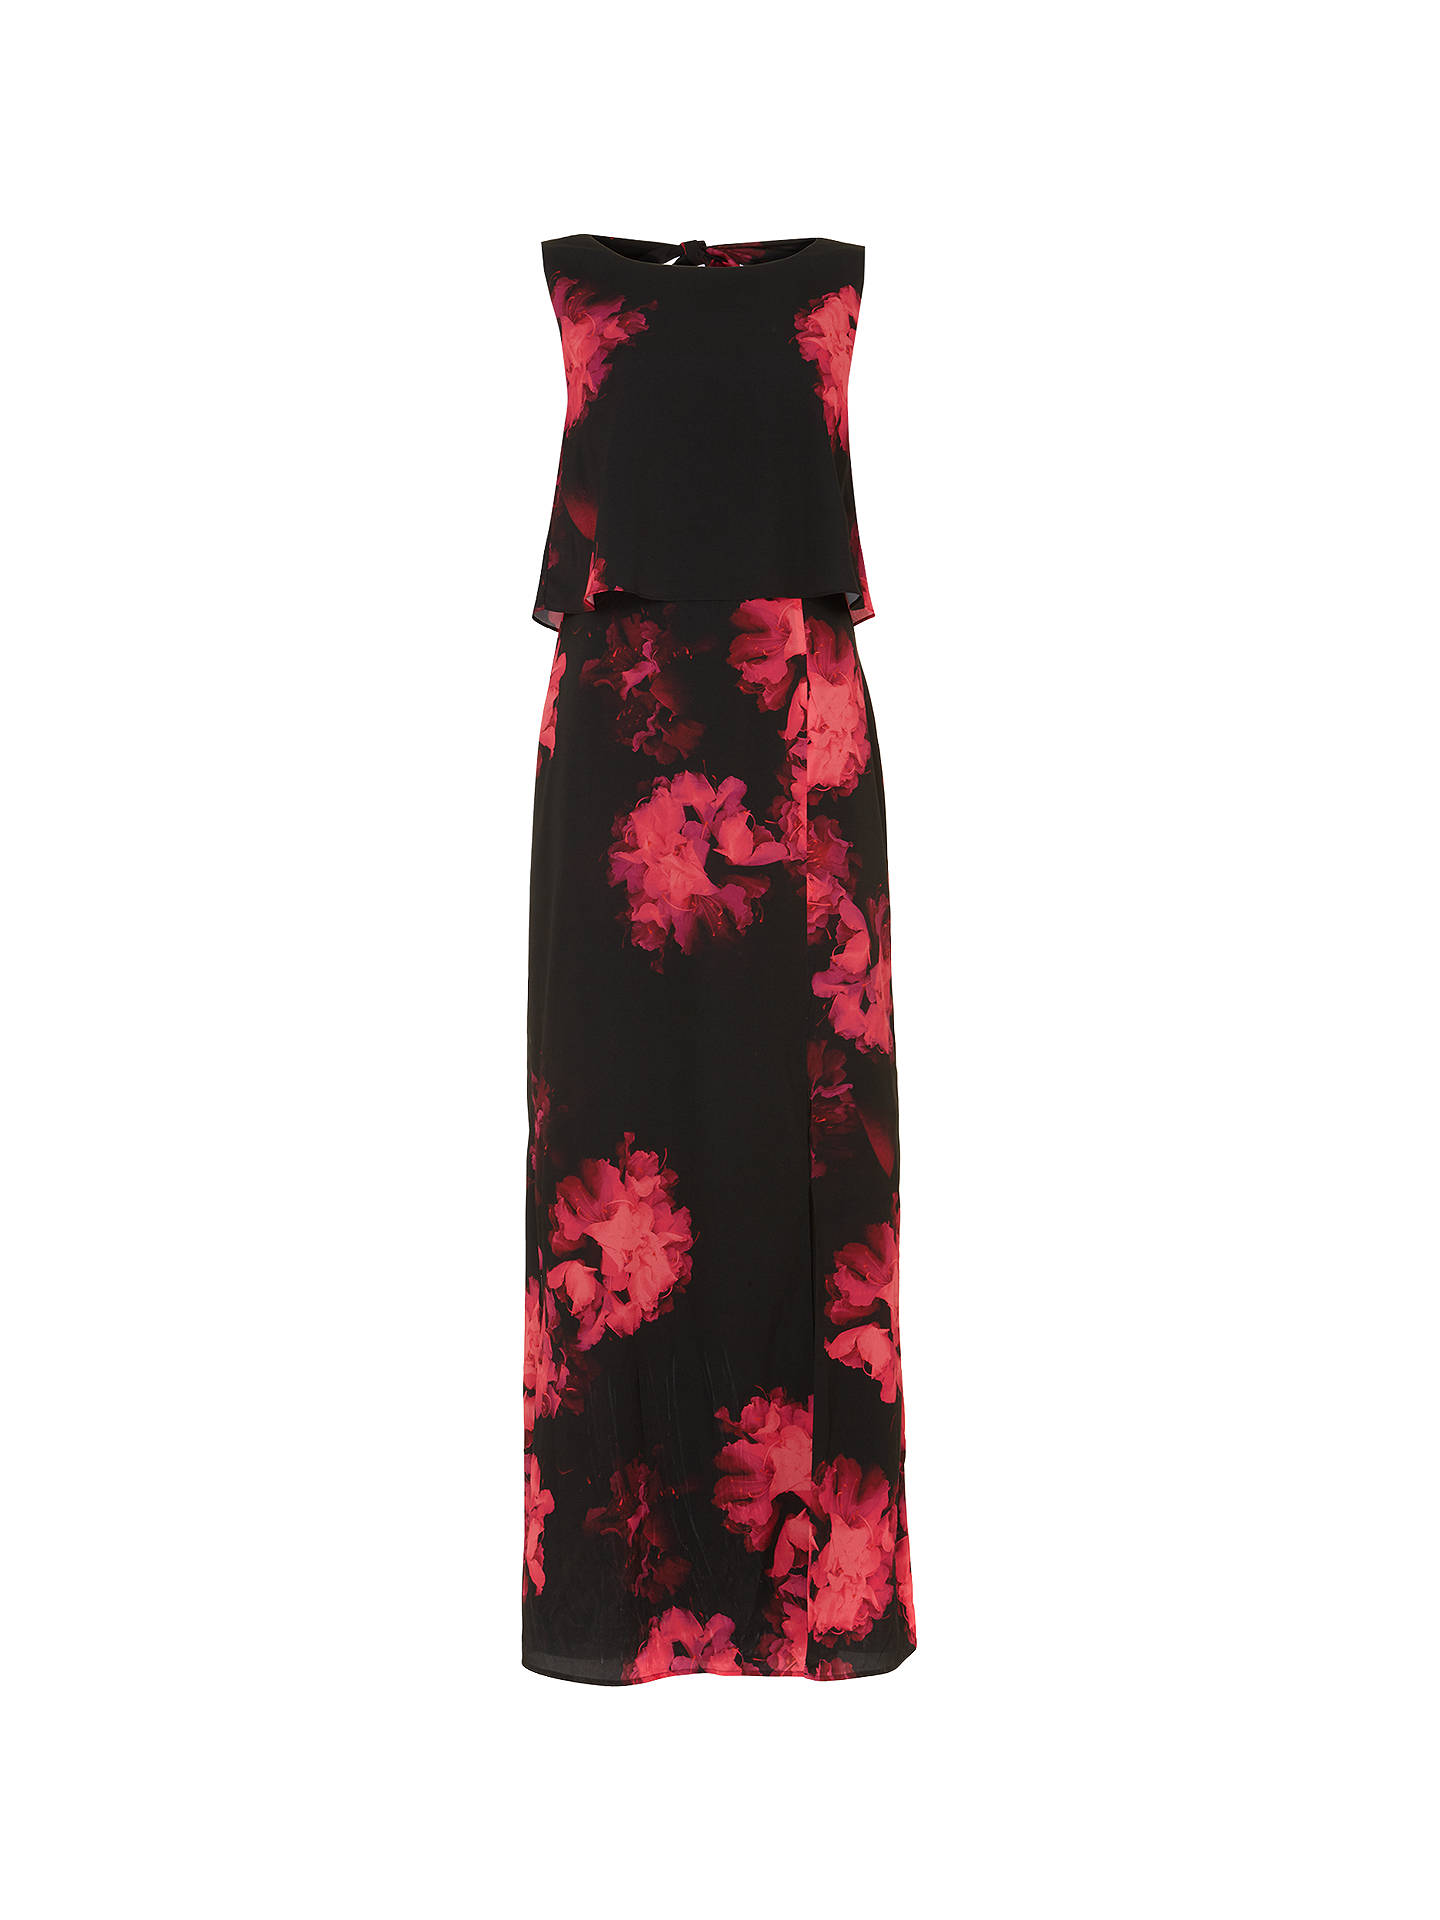 4ddb08696d7 Buy Phase Eight Ali Floral Printed Maxi Dress